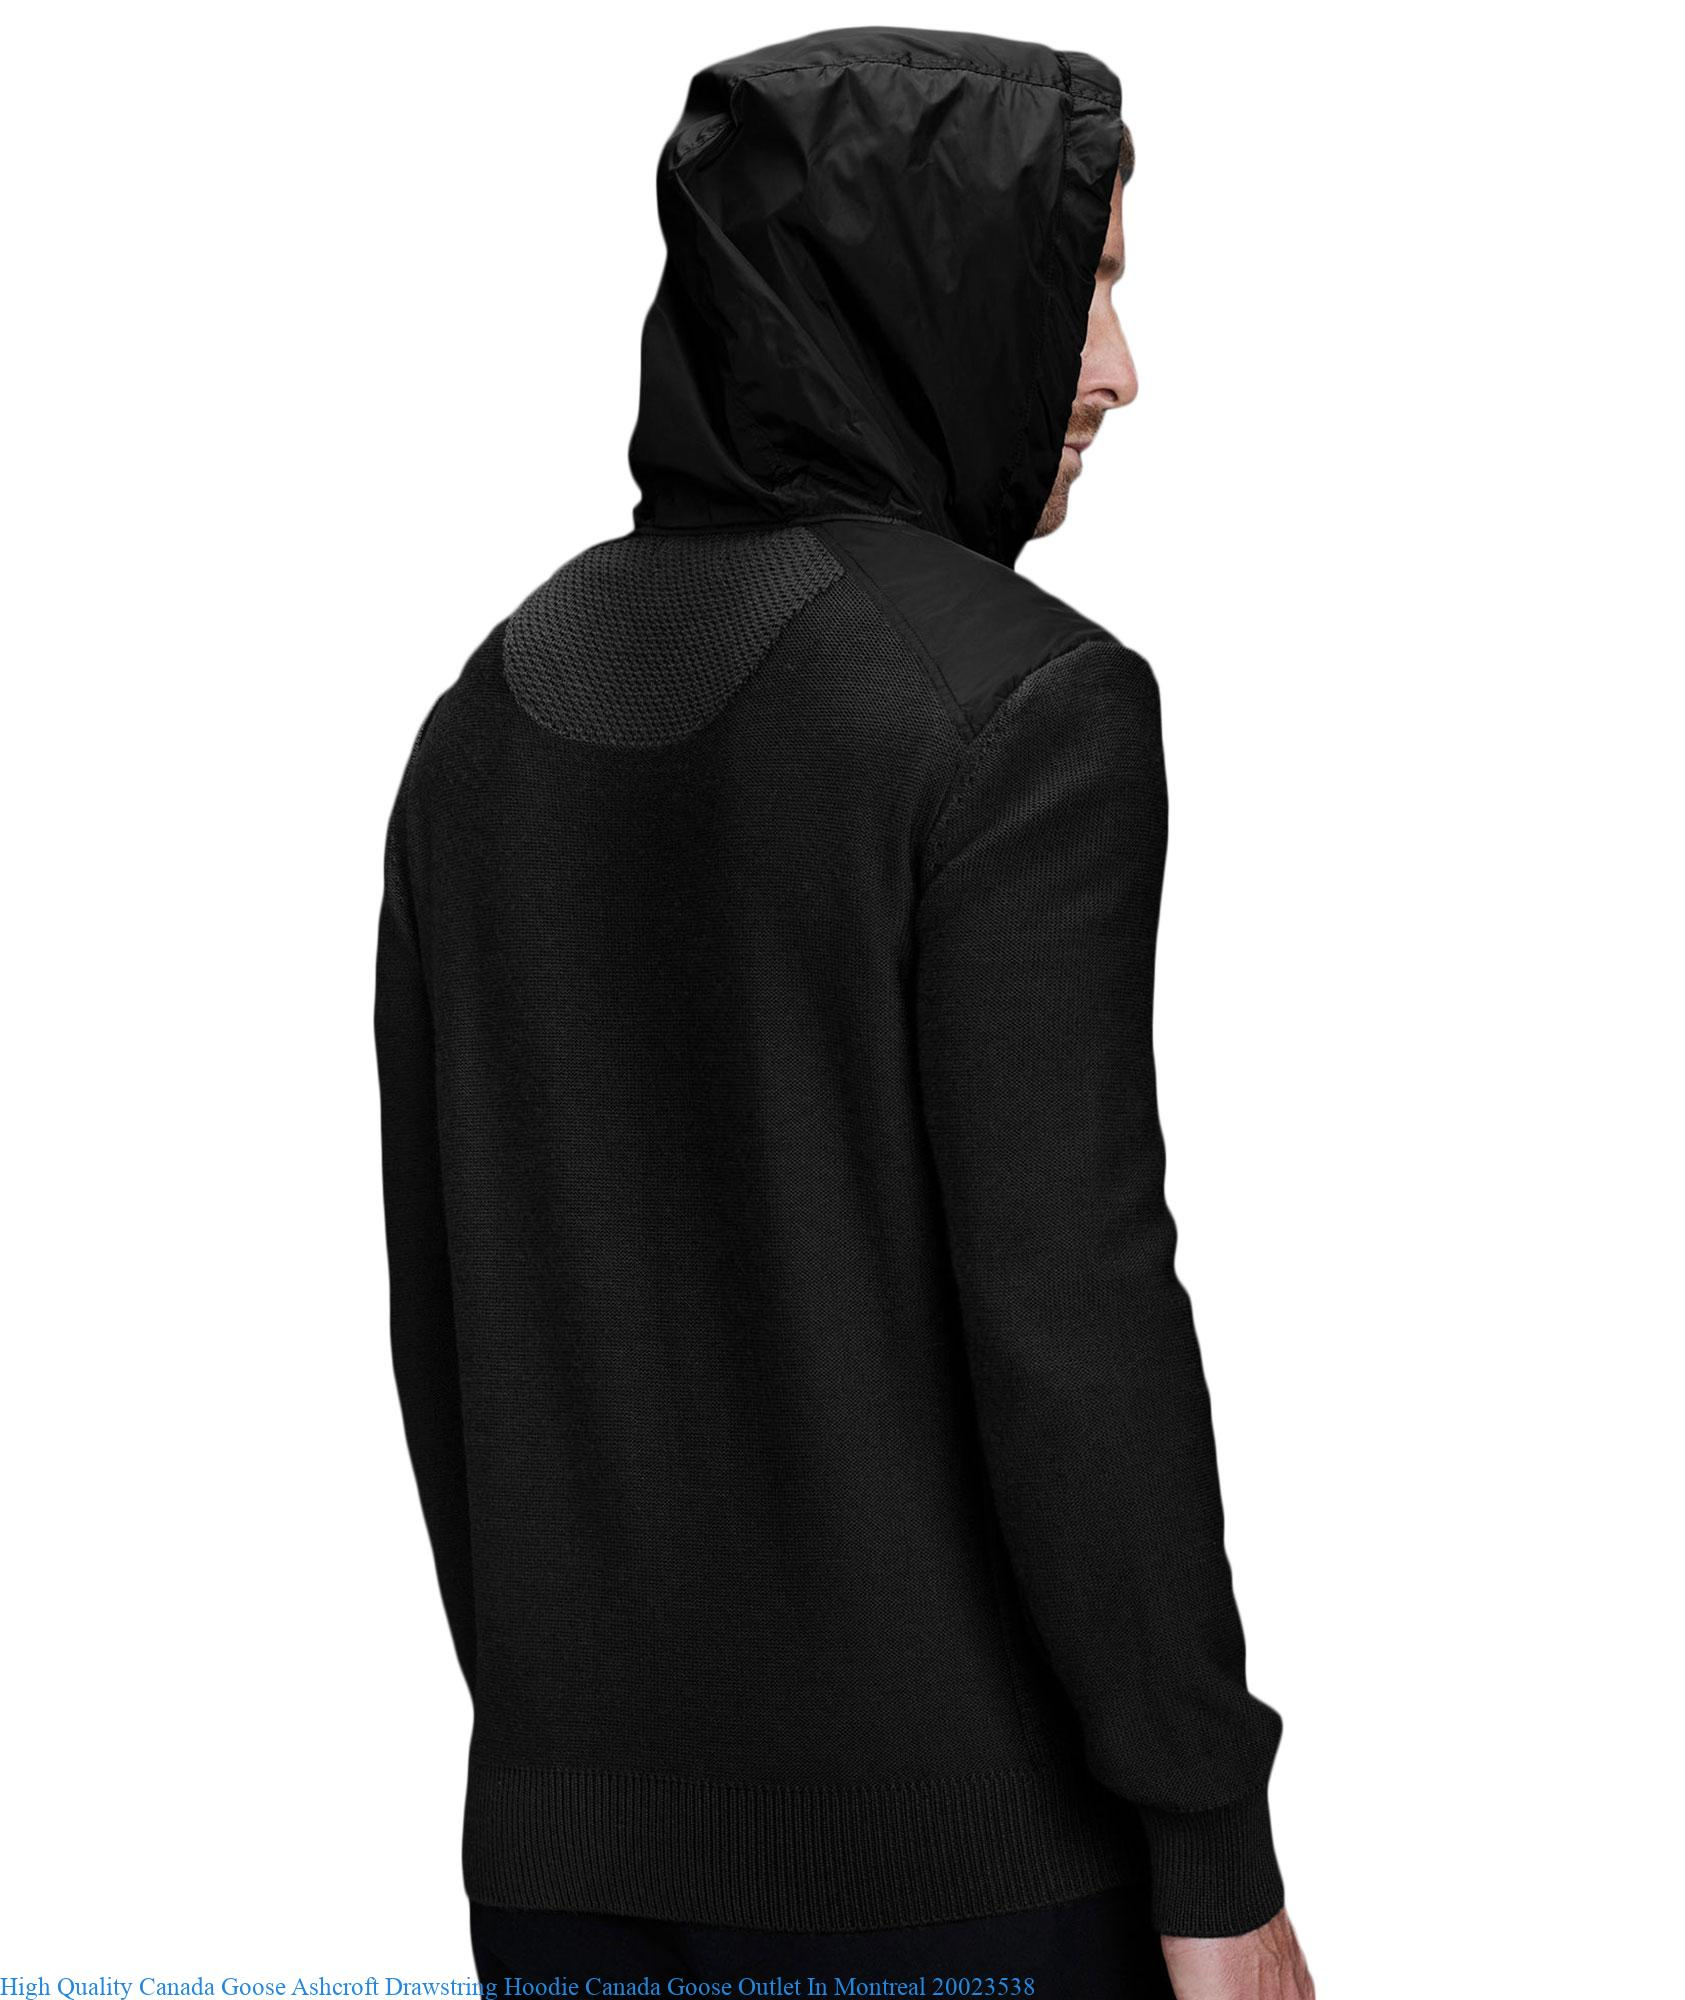 High Quality Canada Goose Ashcroft Drawstring Hoodie Canada Goose Outlet In Montreal 20023538